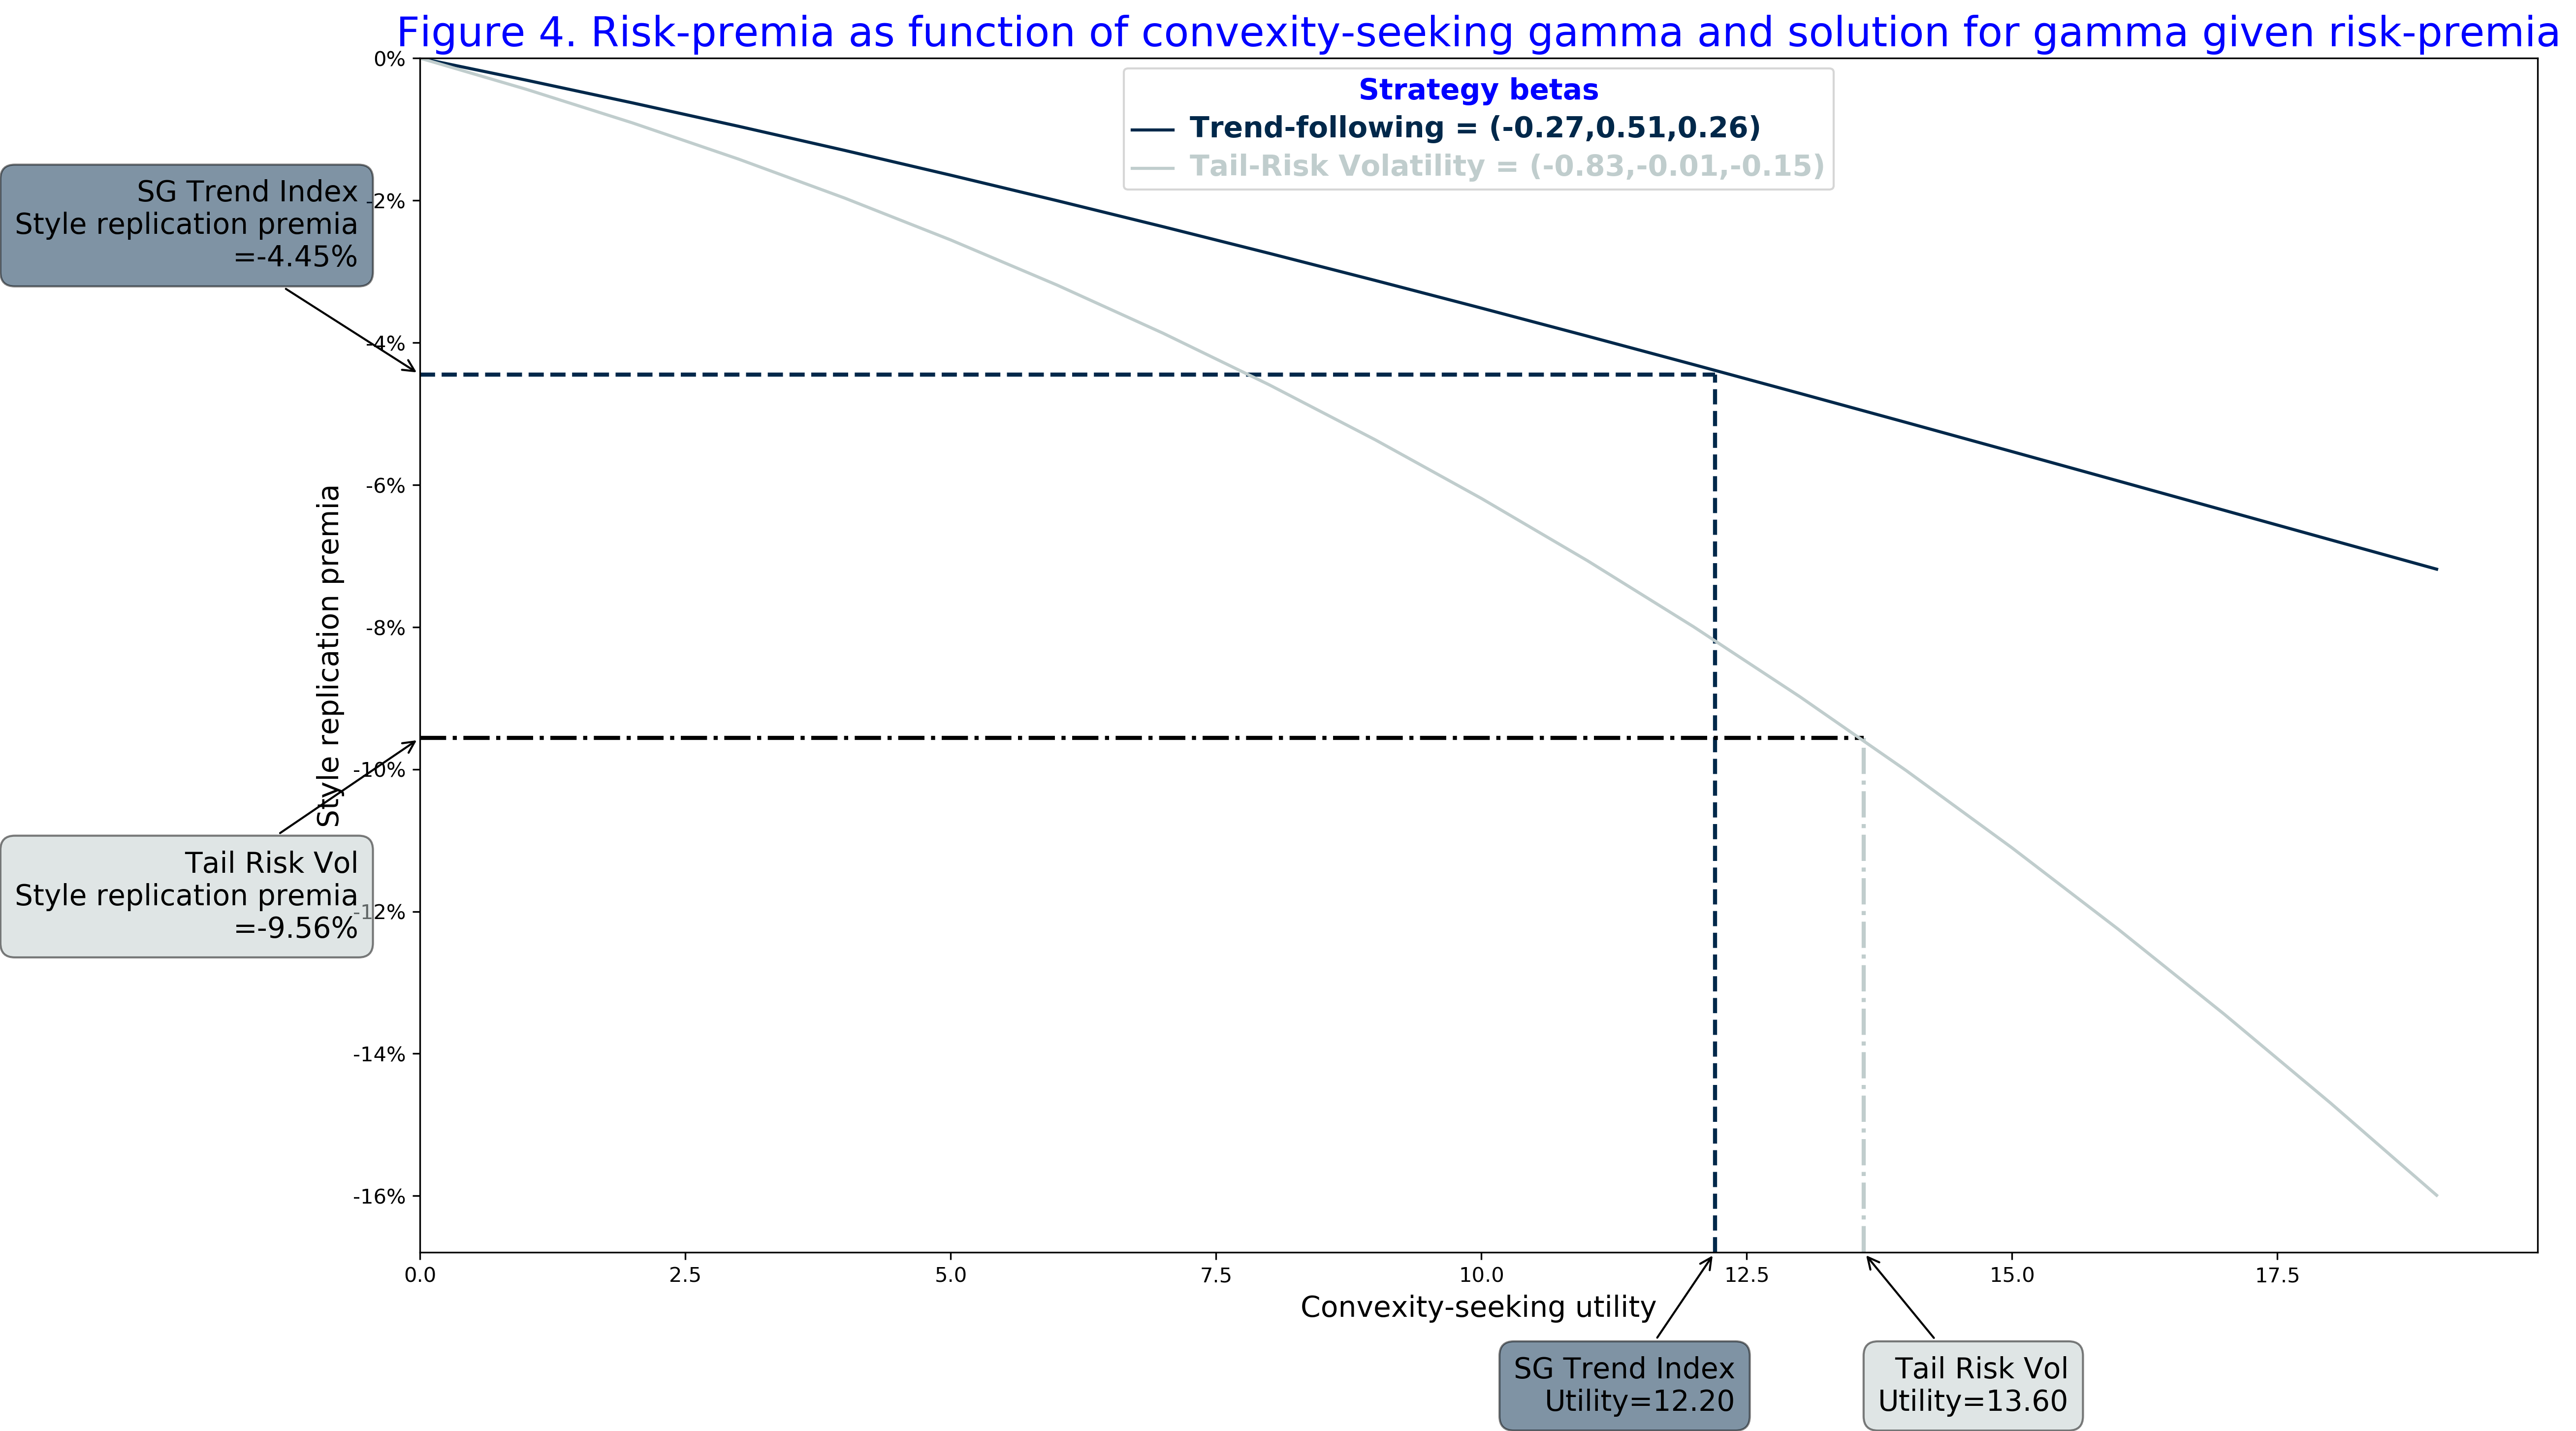 Figure 4 Risk-premia as function of convexity-seeking gamma and solution for gamma given risk-premia